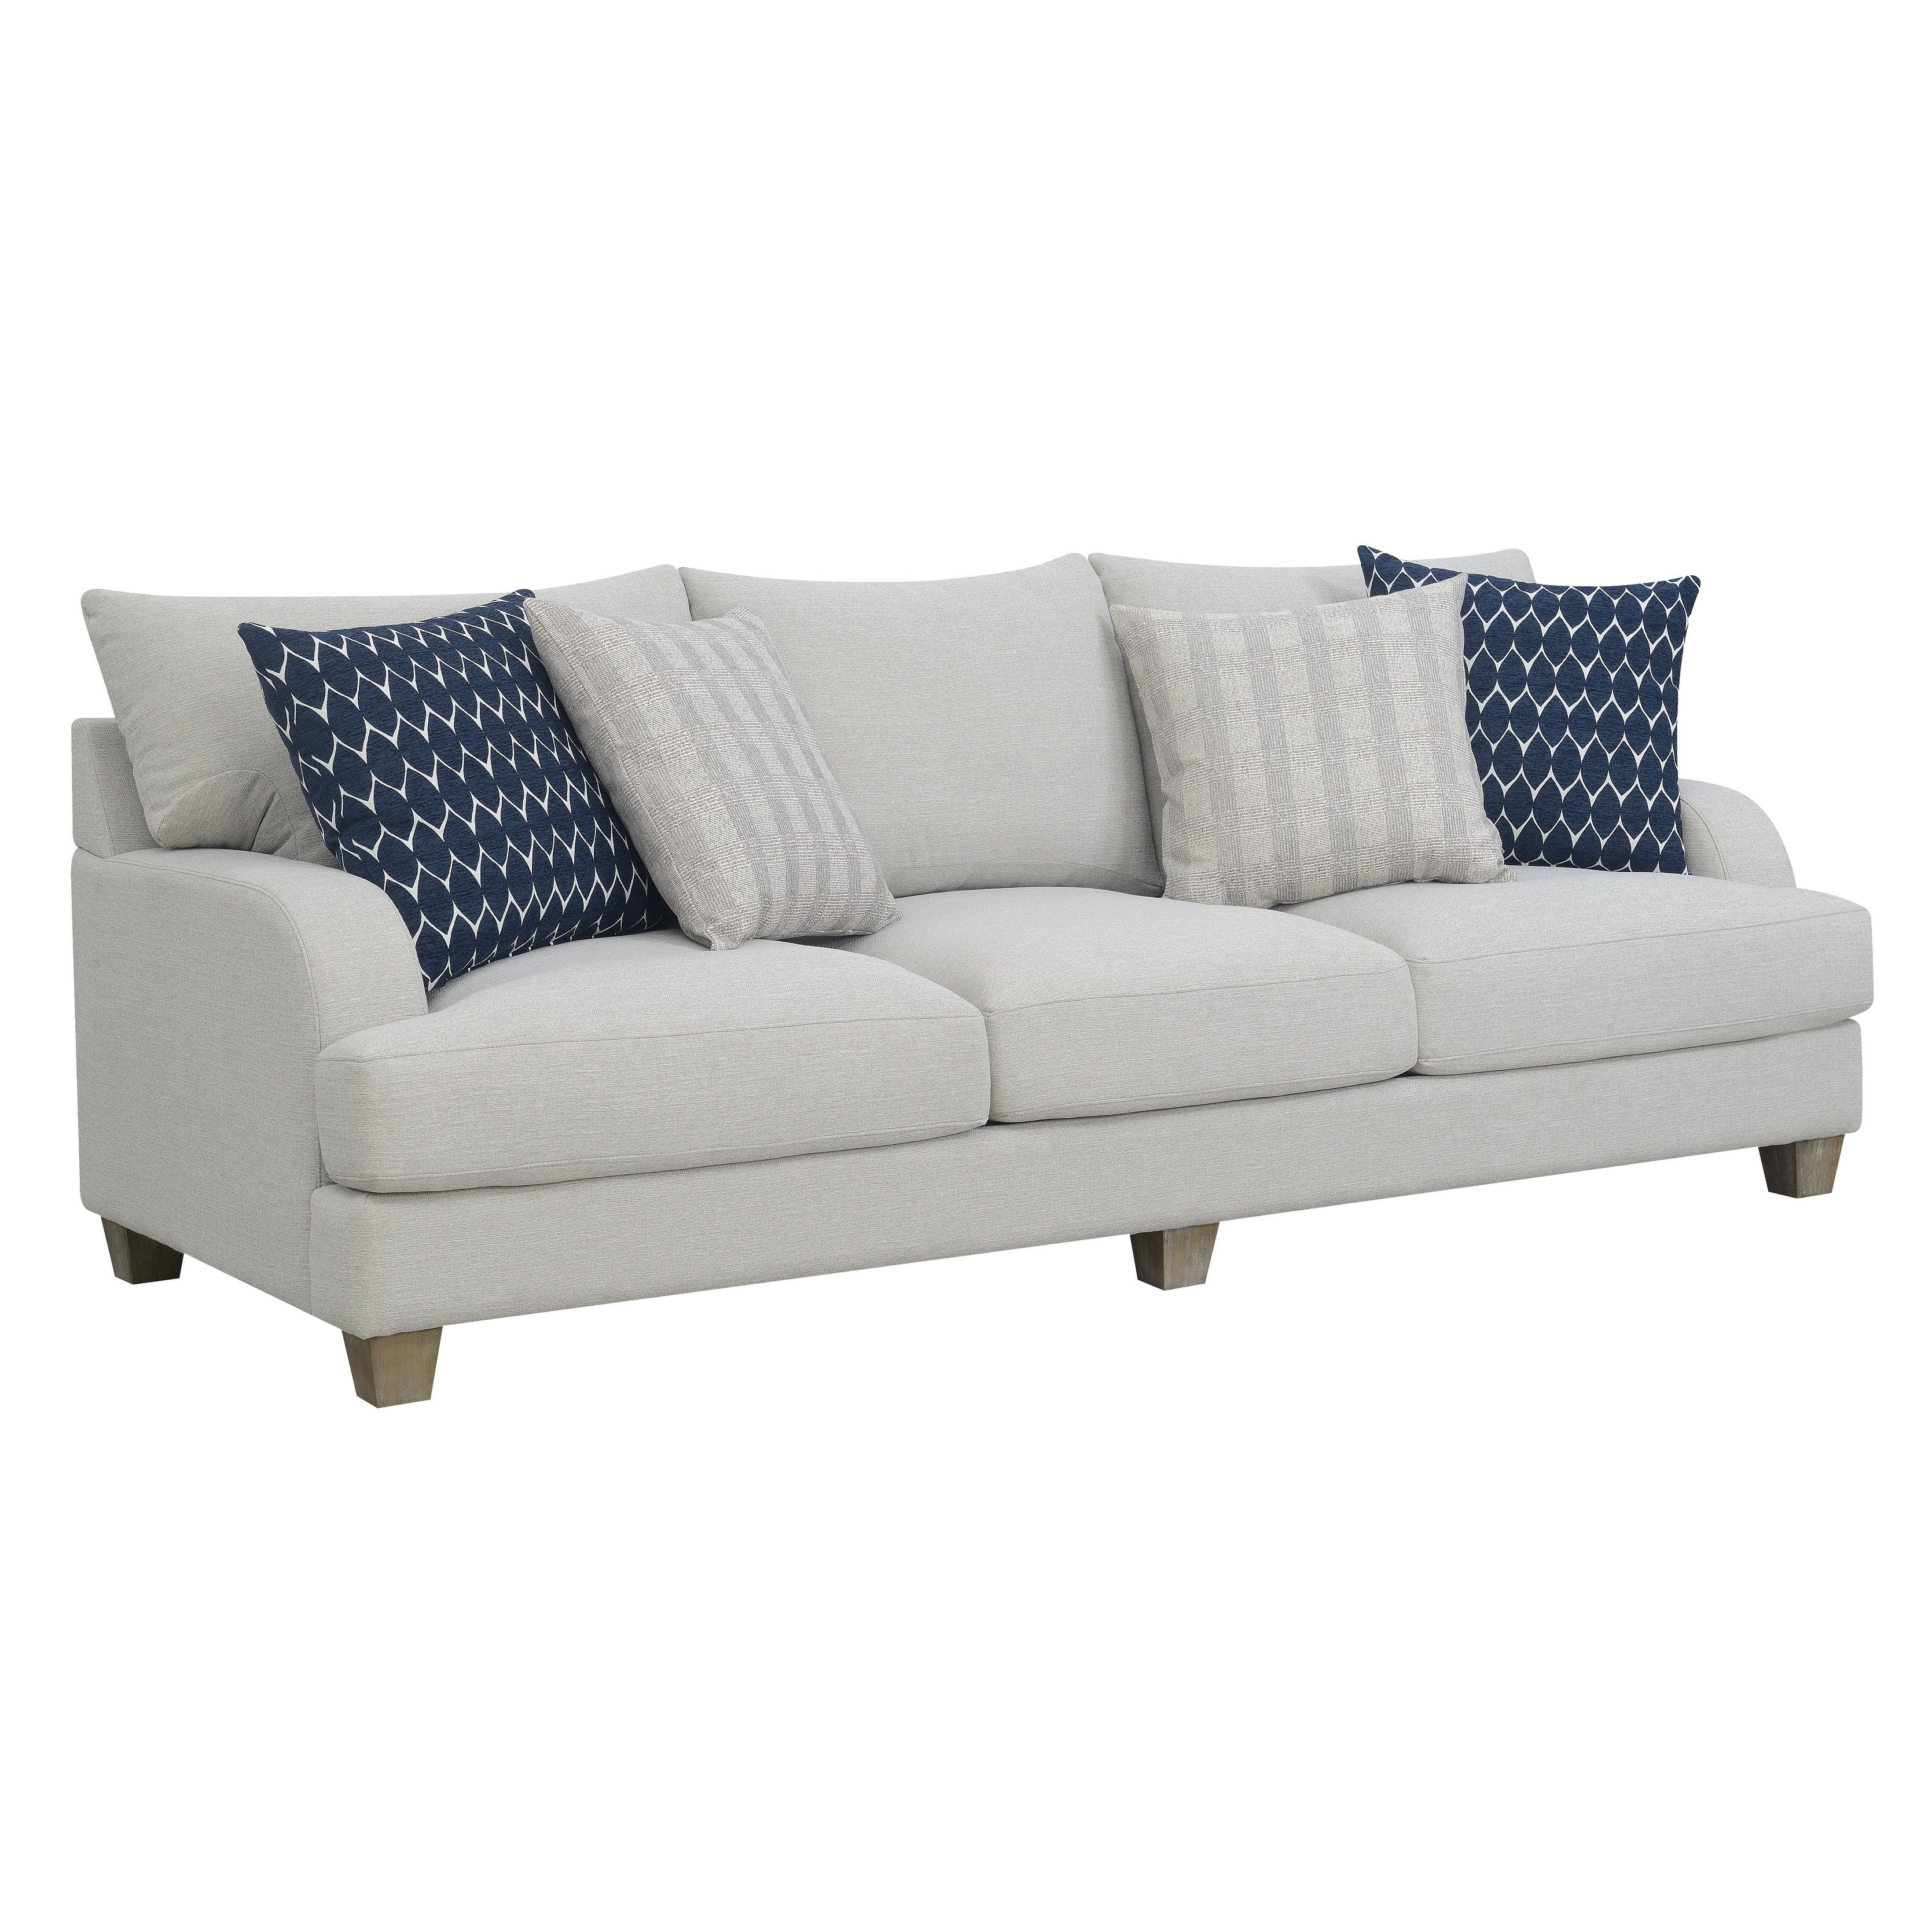 Emerald Home Laney Harbor Gray 102 Sofa With Pillows Modern English Roll Arm And Loose Seat Back Cushions